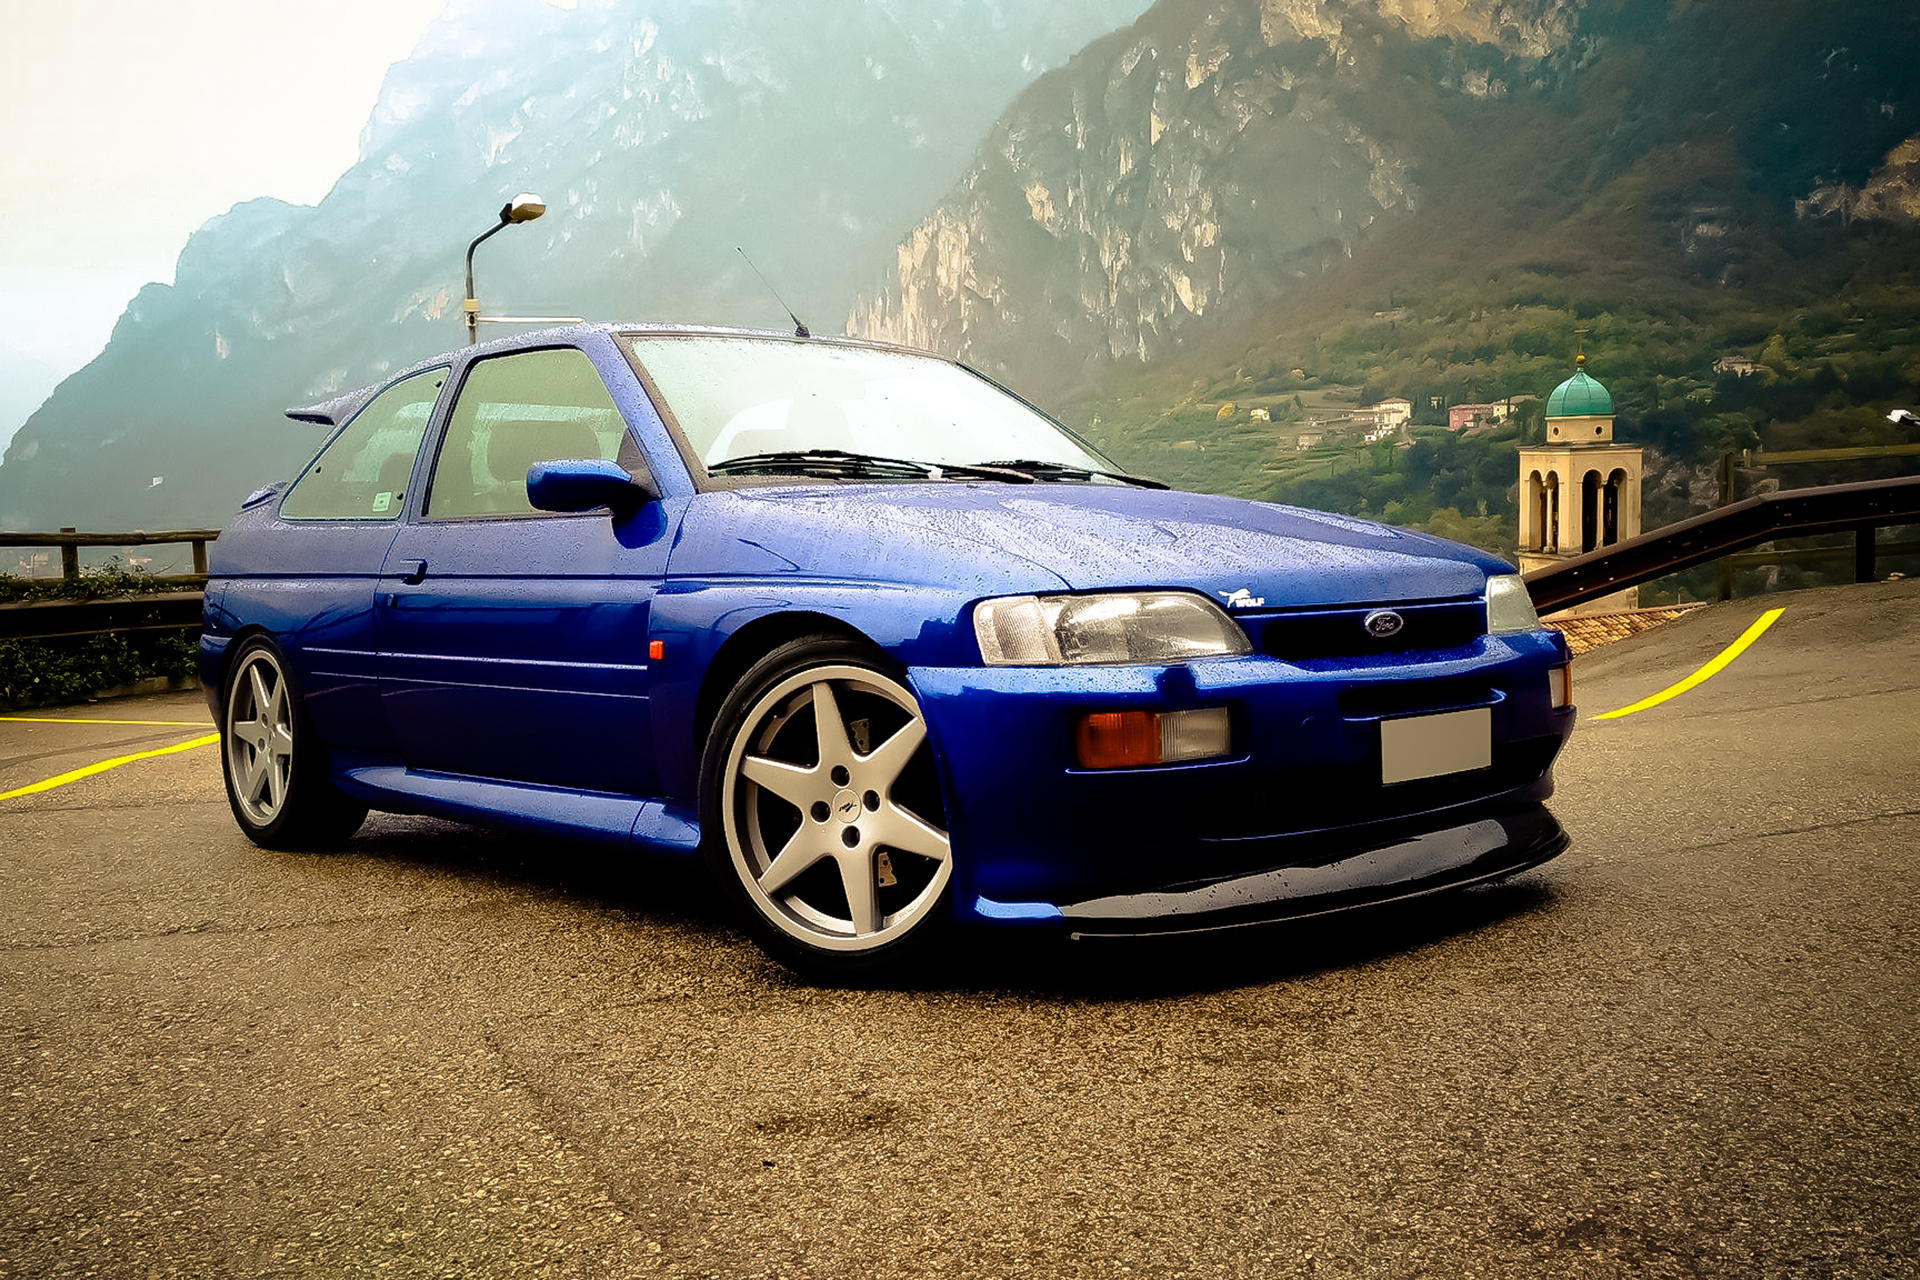 Ford Cosworth Club RS Escort Sierra Ruote Leggendarie